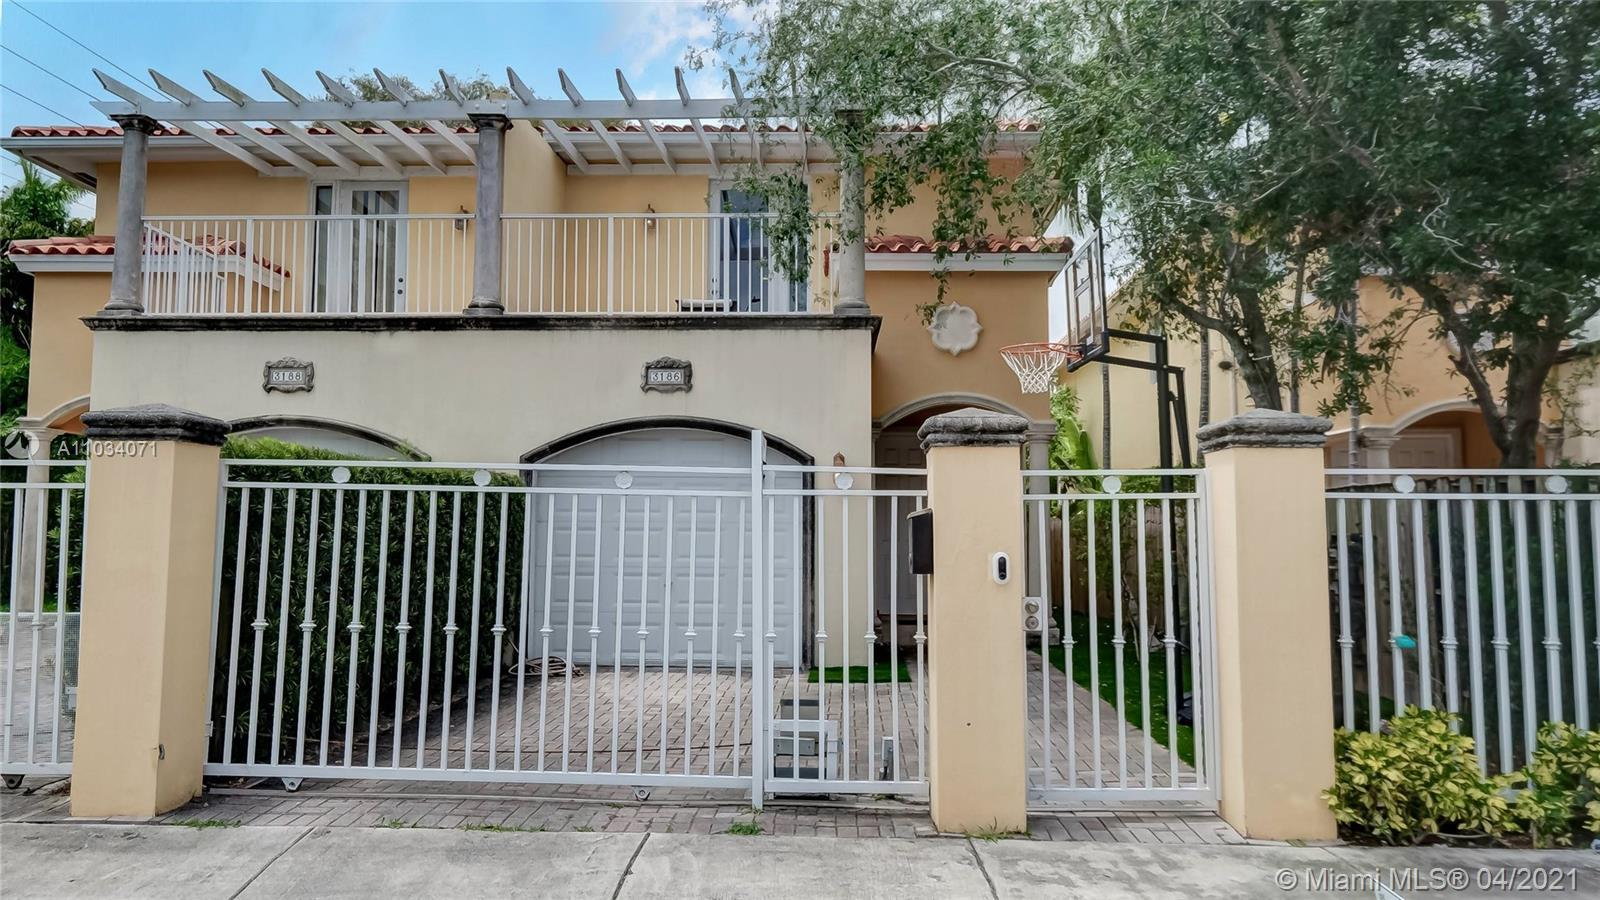 Amazing gated townhouse in the heart of Coconut Grove! This TH features 3BR/2.5B with high ceilings